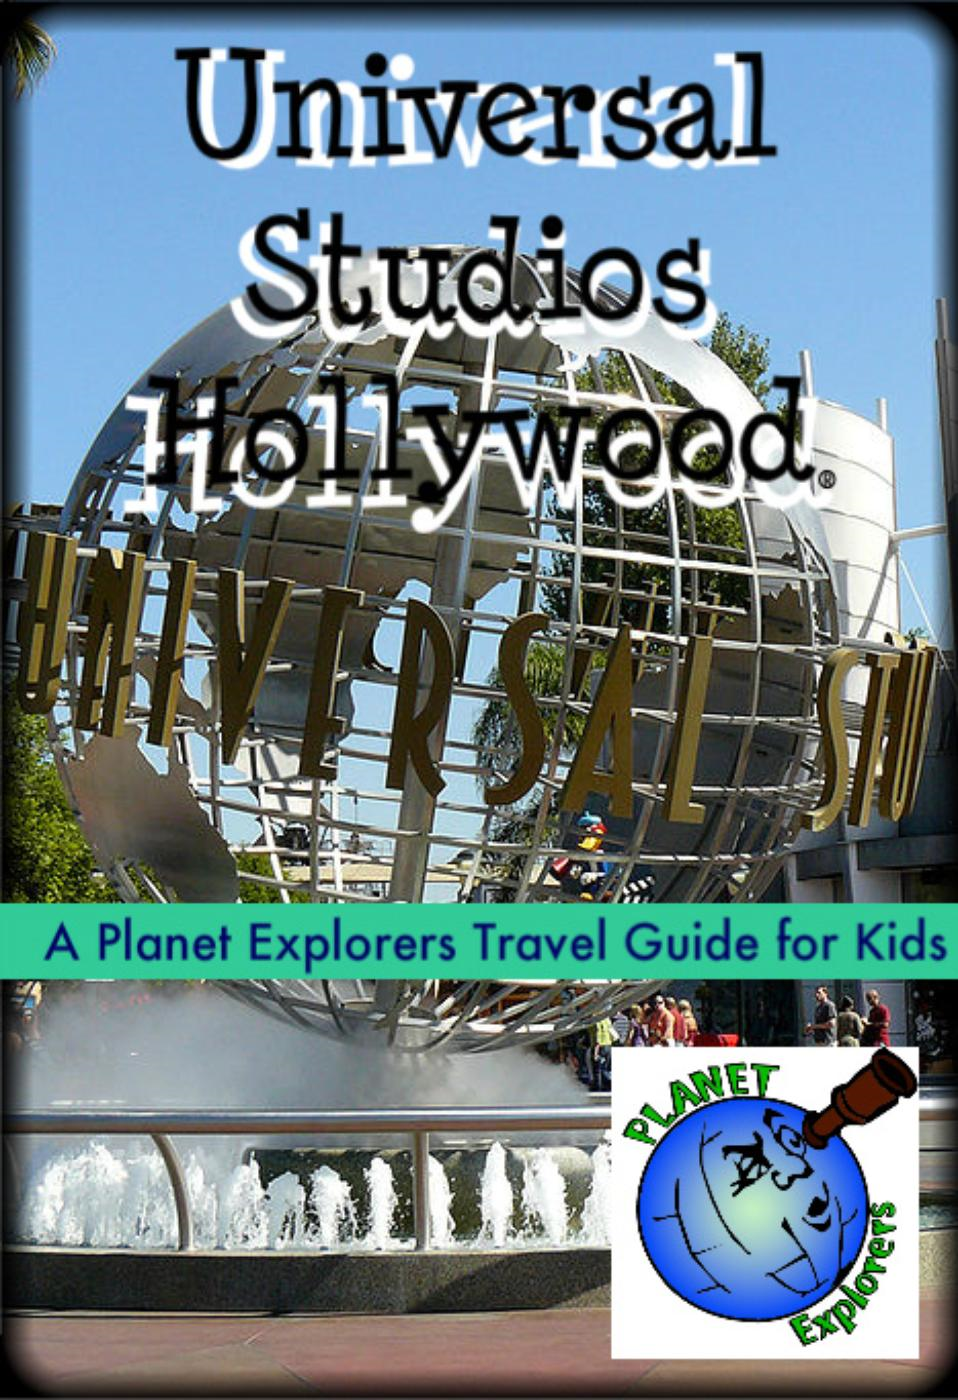 Universal Studios Hollywood: A Planet Explorers Travel Guide for Kids (Planet Explorers Travel Guides for Kids)